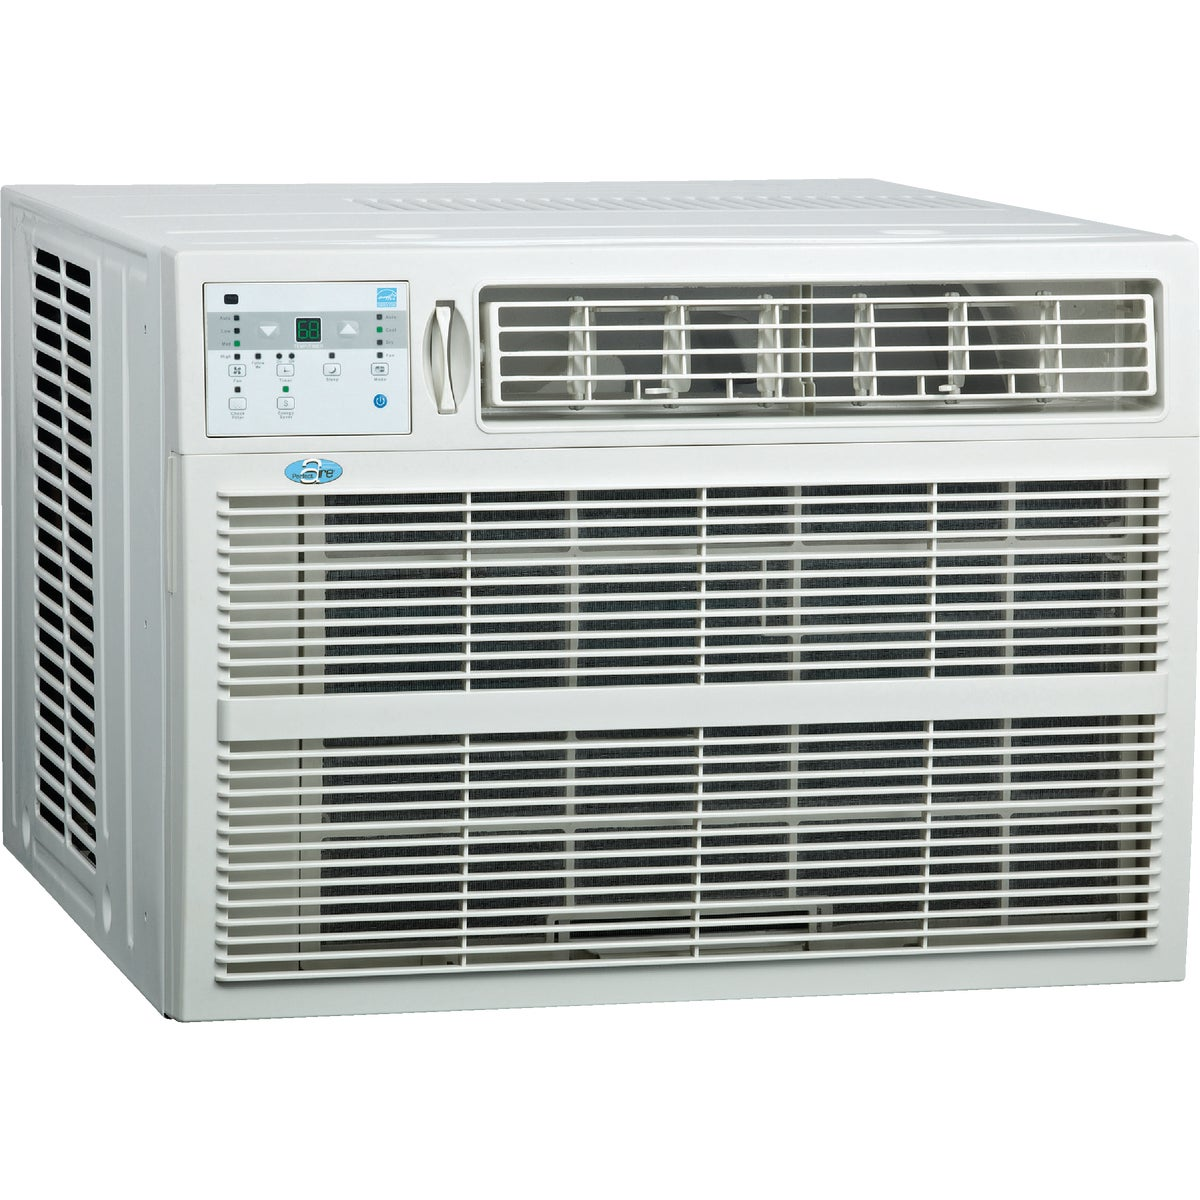 18000BTU AIR CONDITIONER - PAC18000 by Perfect Aire Import